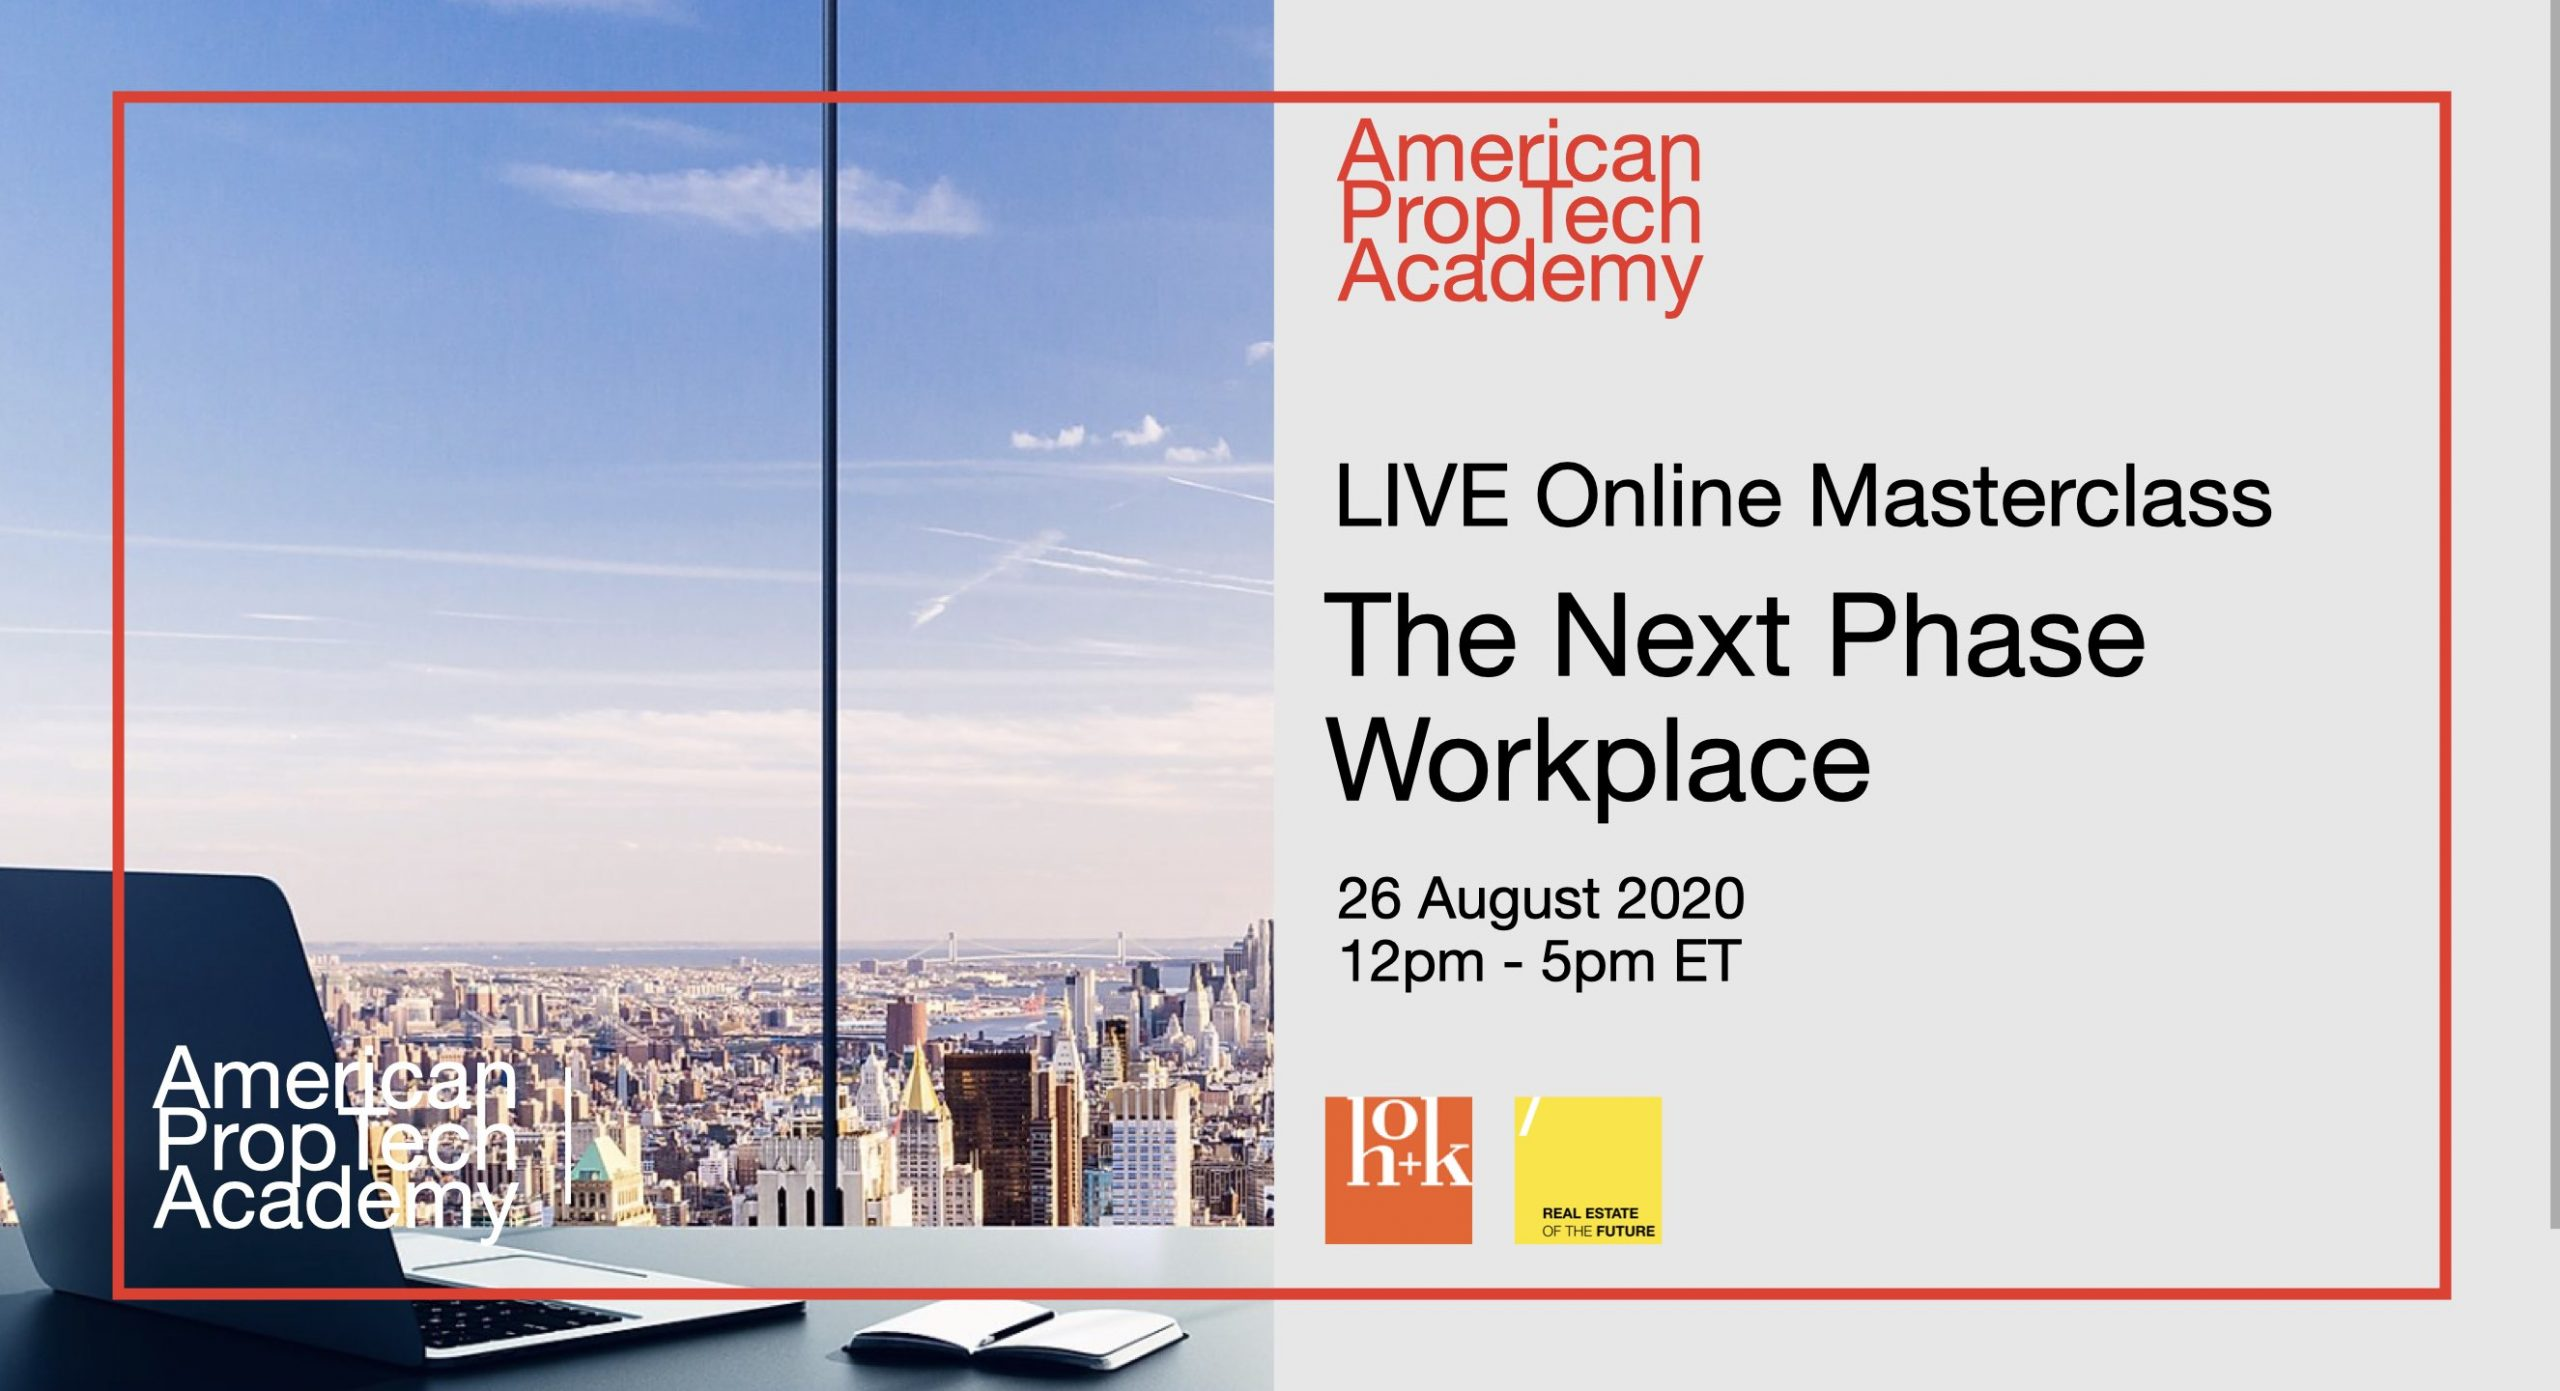 https://anysizedealsweek.com/wp-content/uploads/2020/07/American-PropTech-Academy-next-phase-workplace-horiz-scaled.jpeg